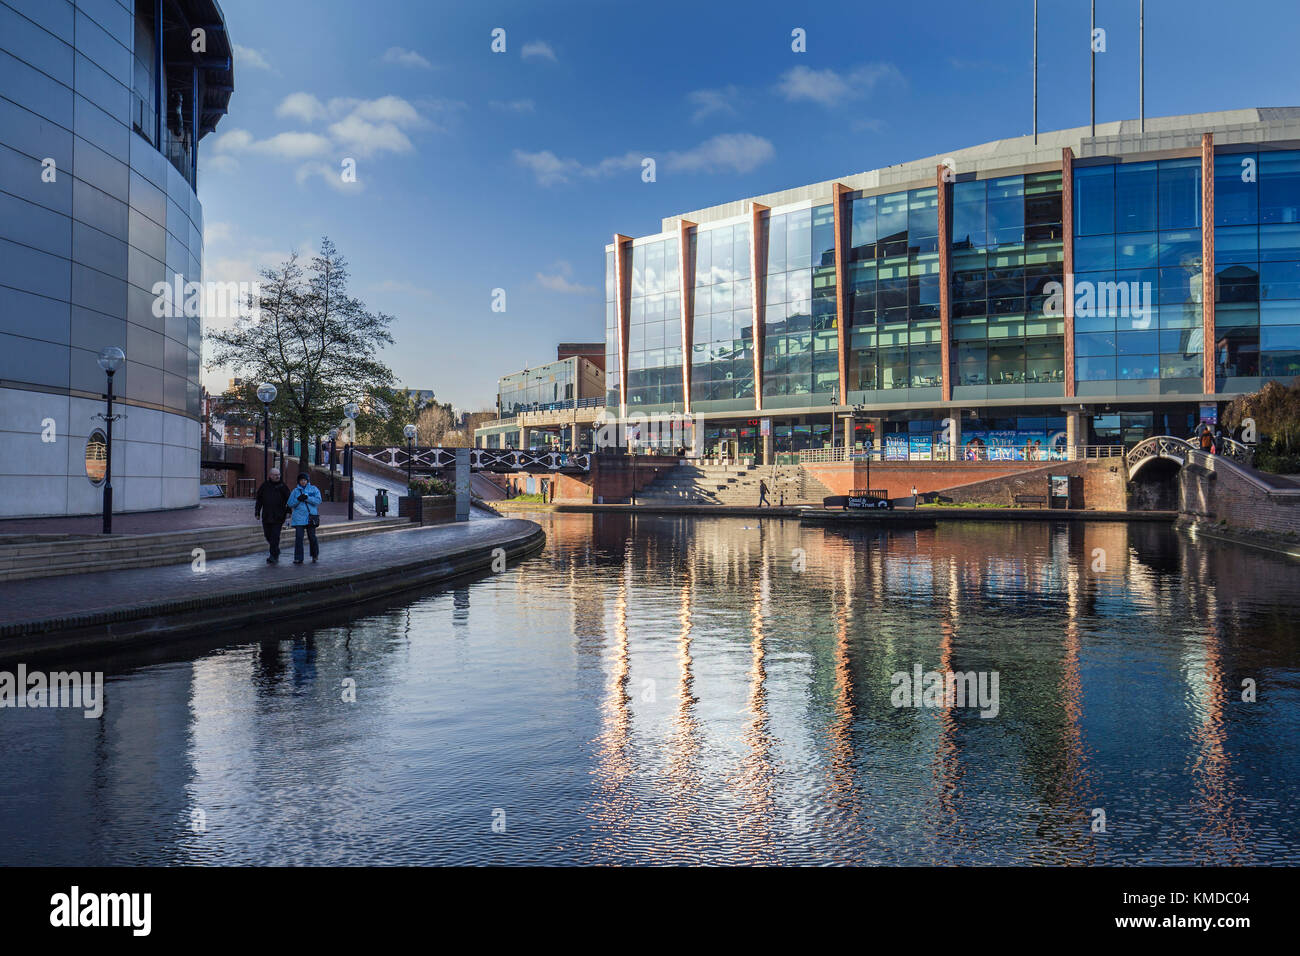 Birmingham City Centre Buildings Reflected on Surface of Canal Stock Photo